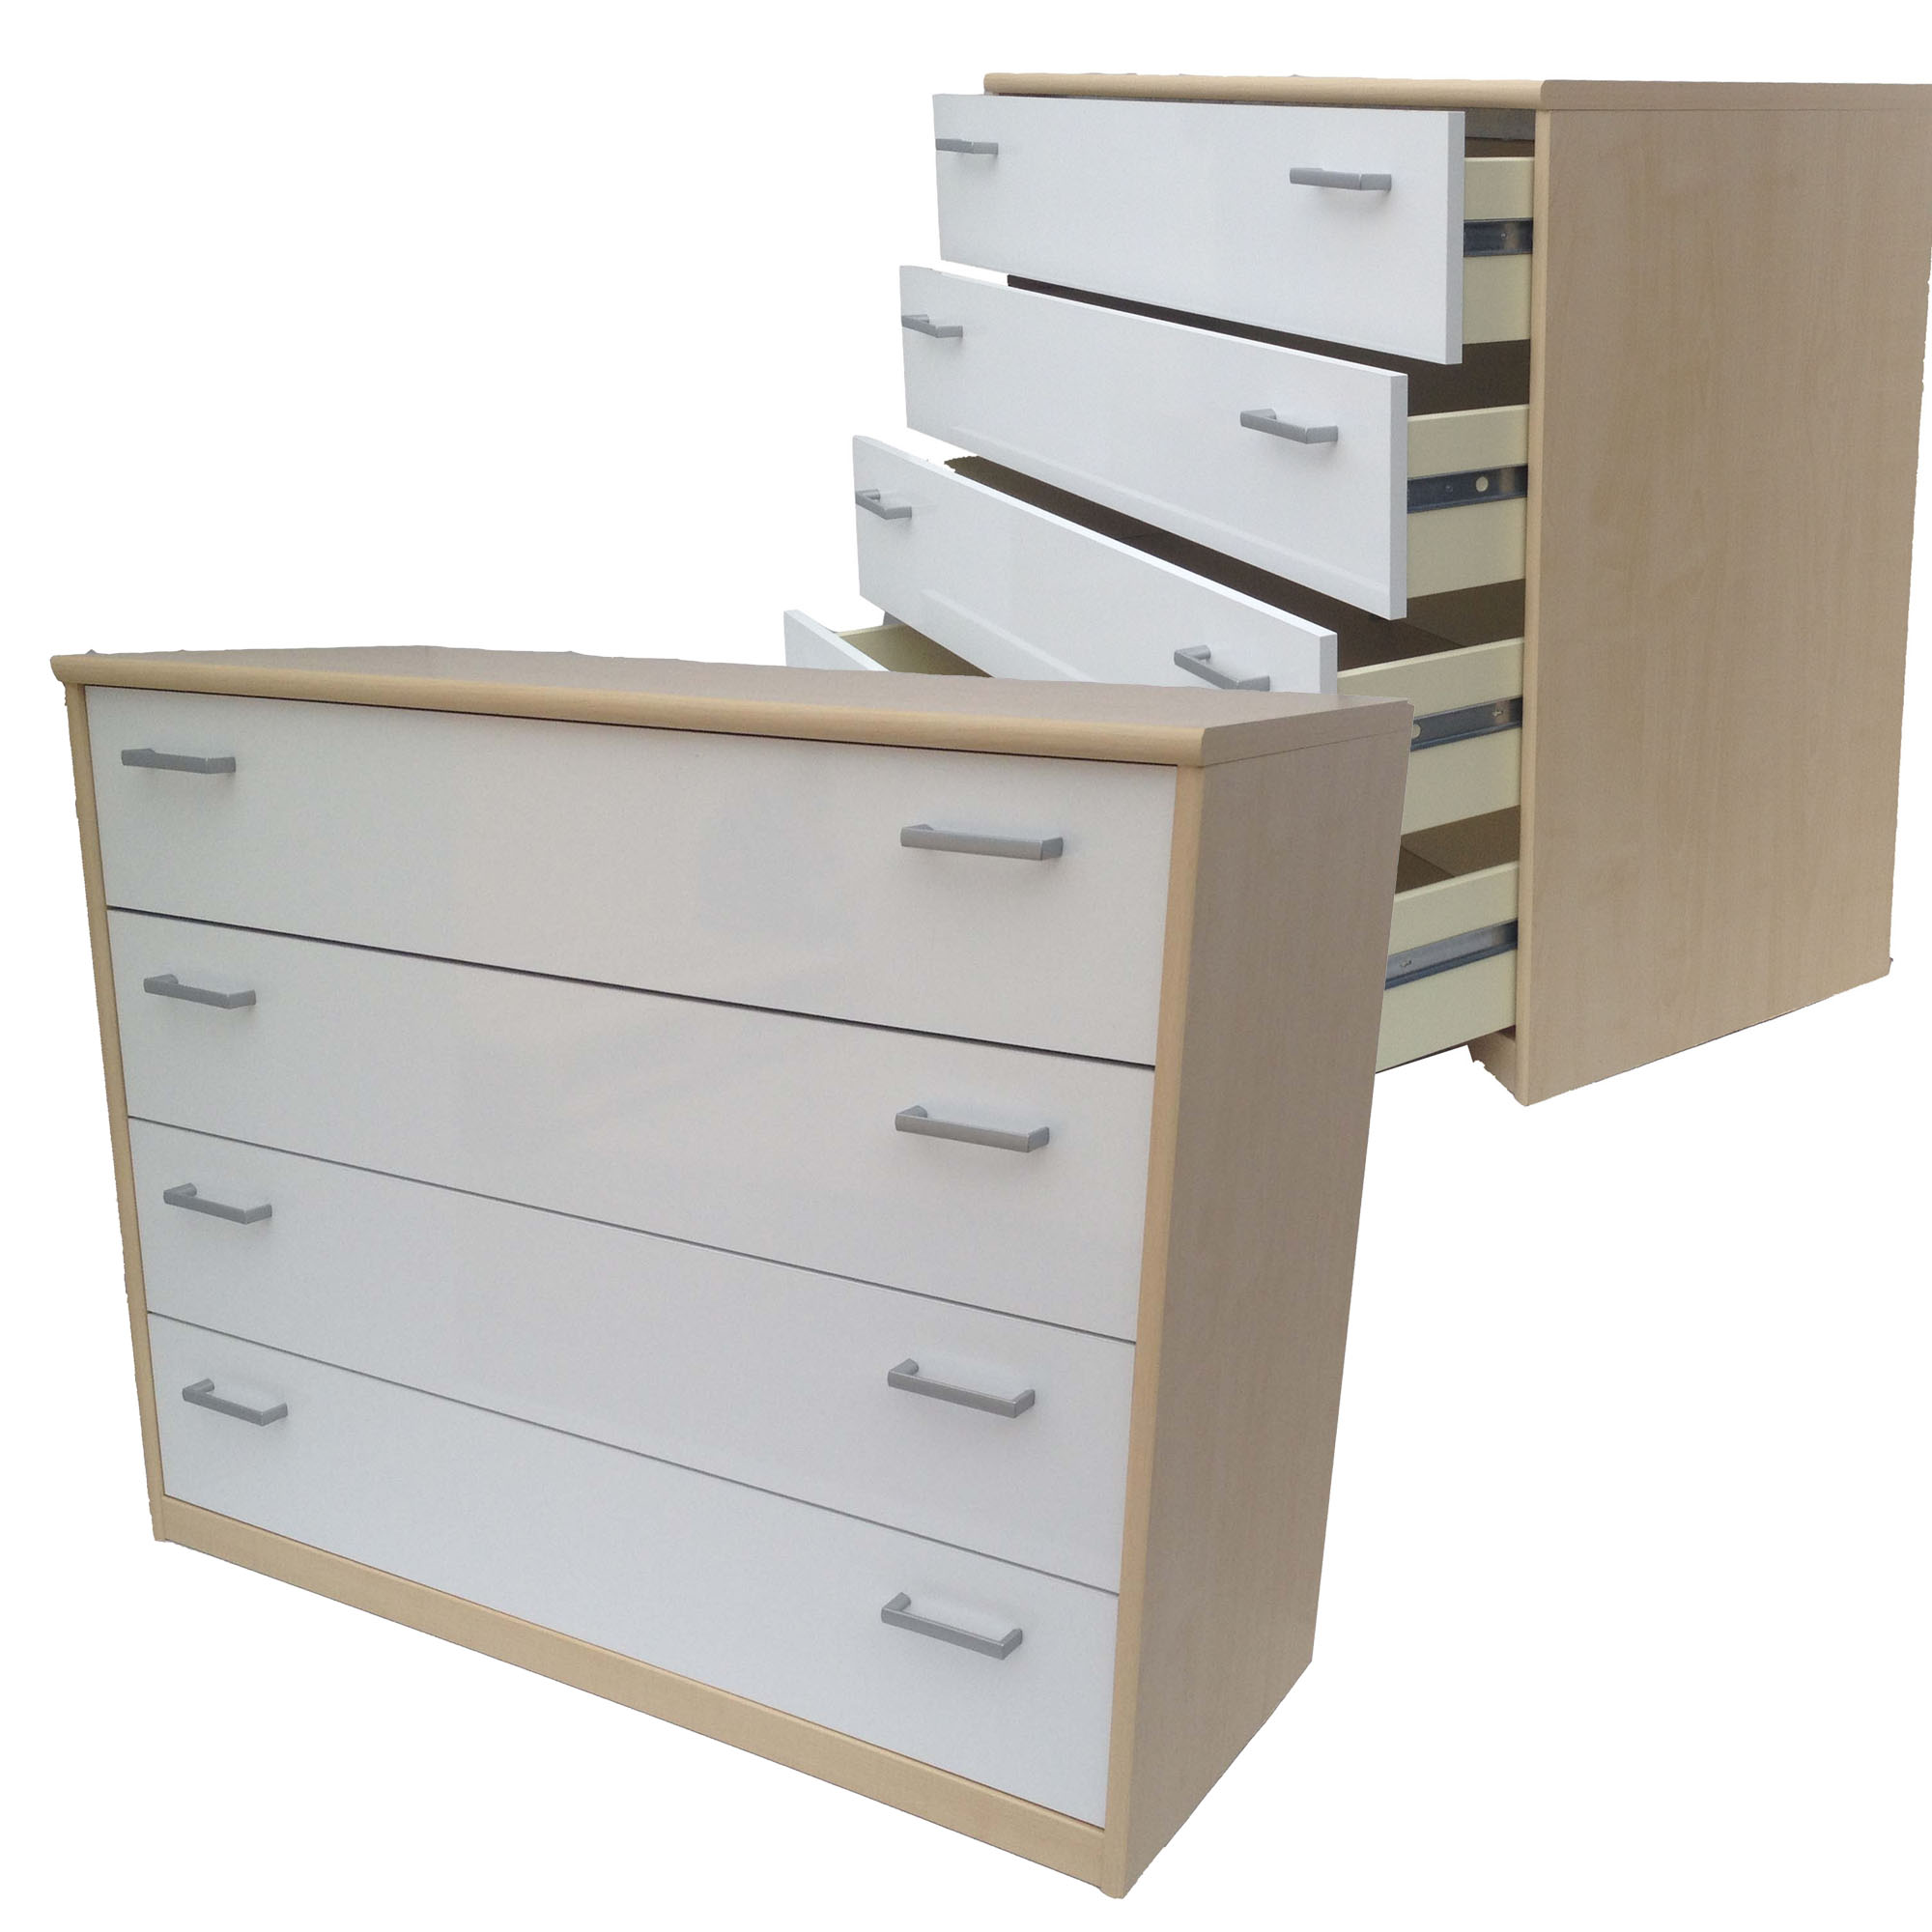 Kommode highboard schubladenkommode anrichte 4 schub ahorn for Kommode cs schmal